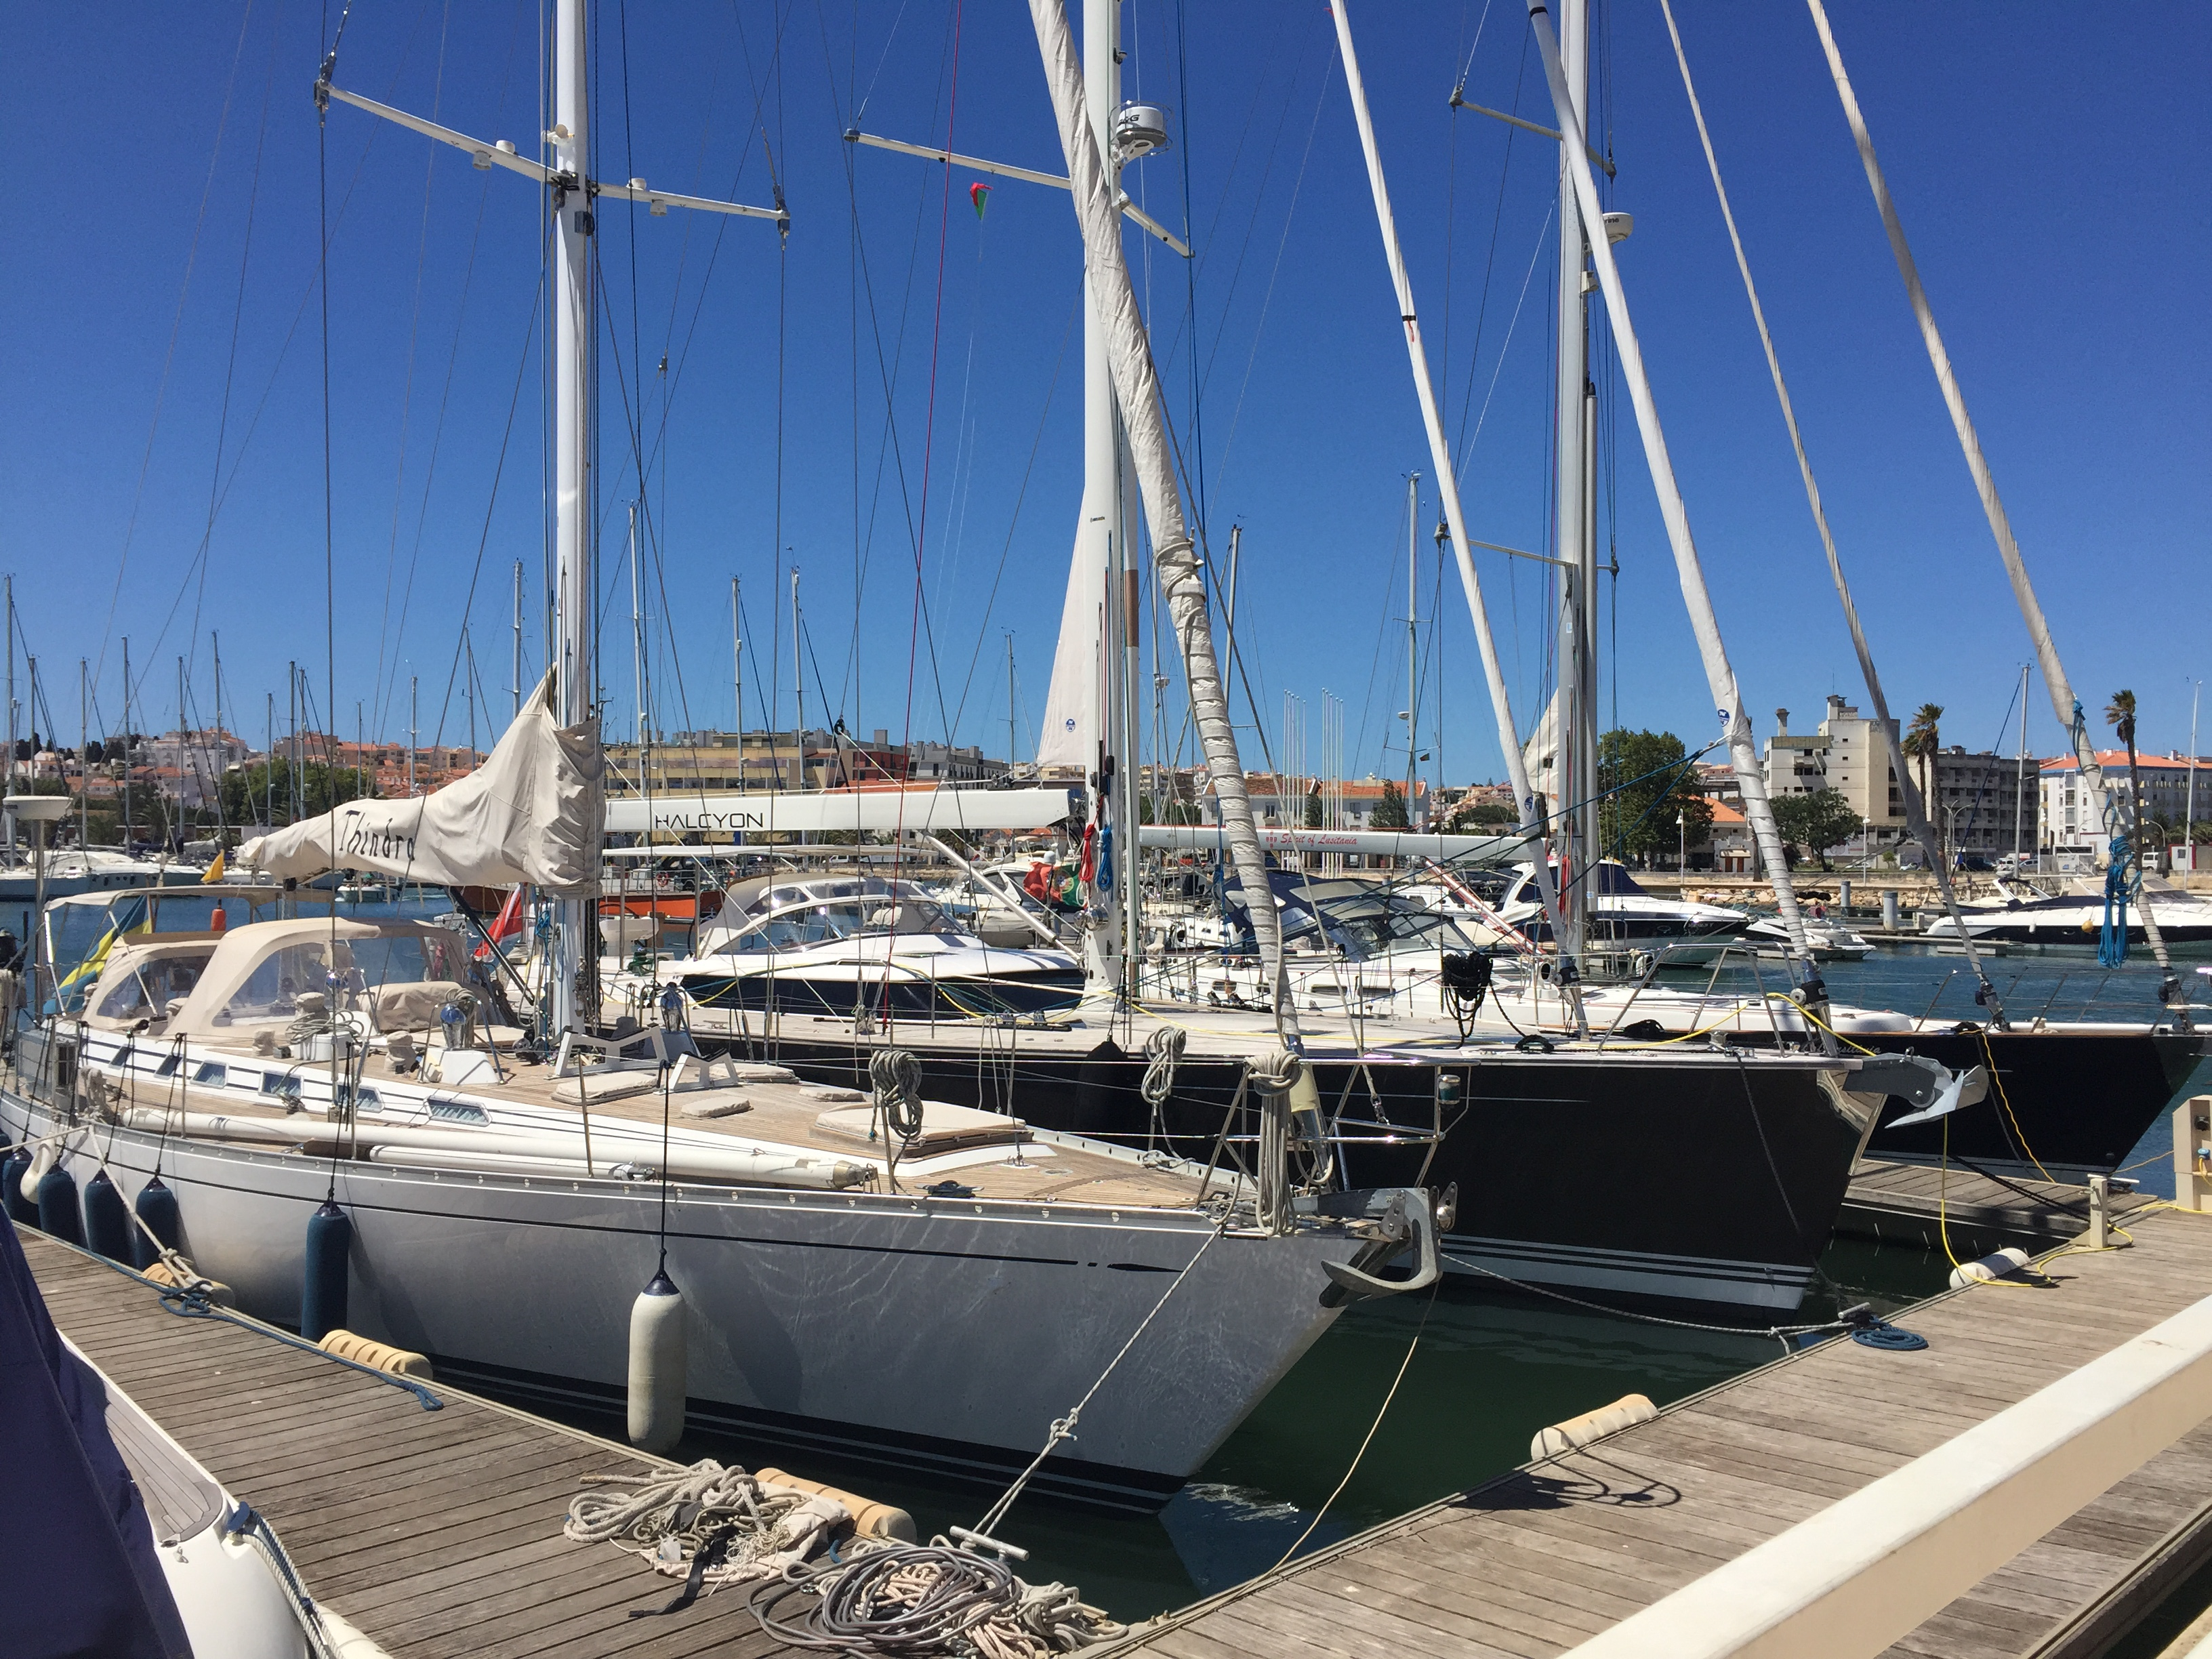 Yachts in Lagos, Portugal